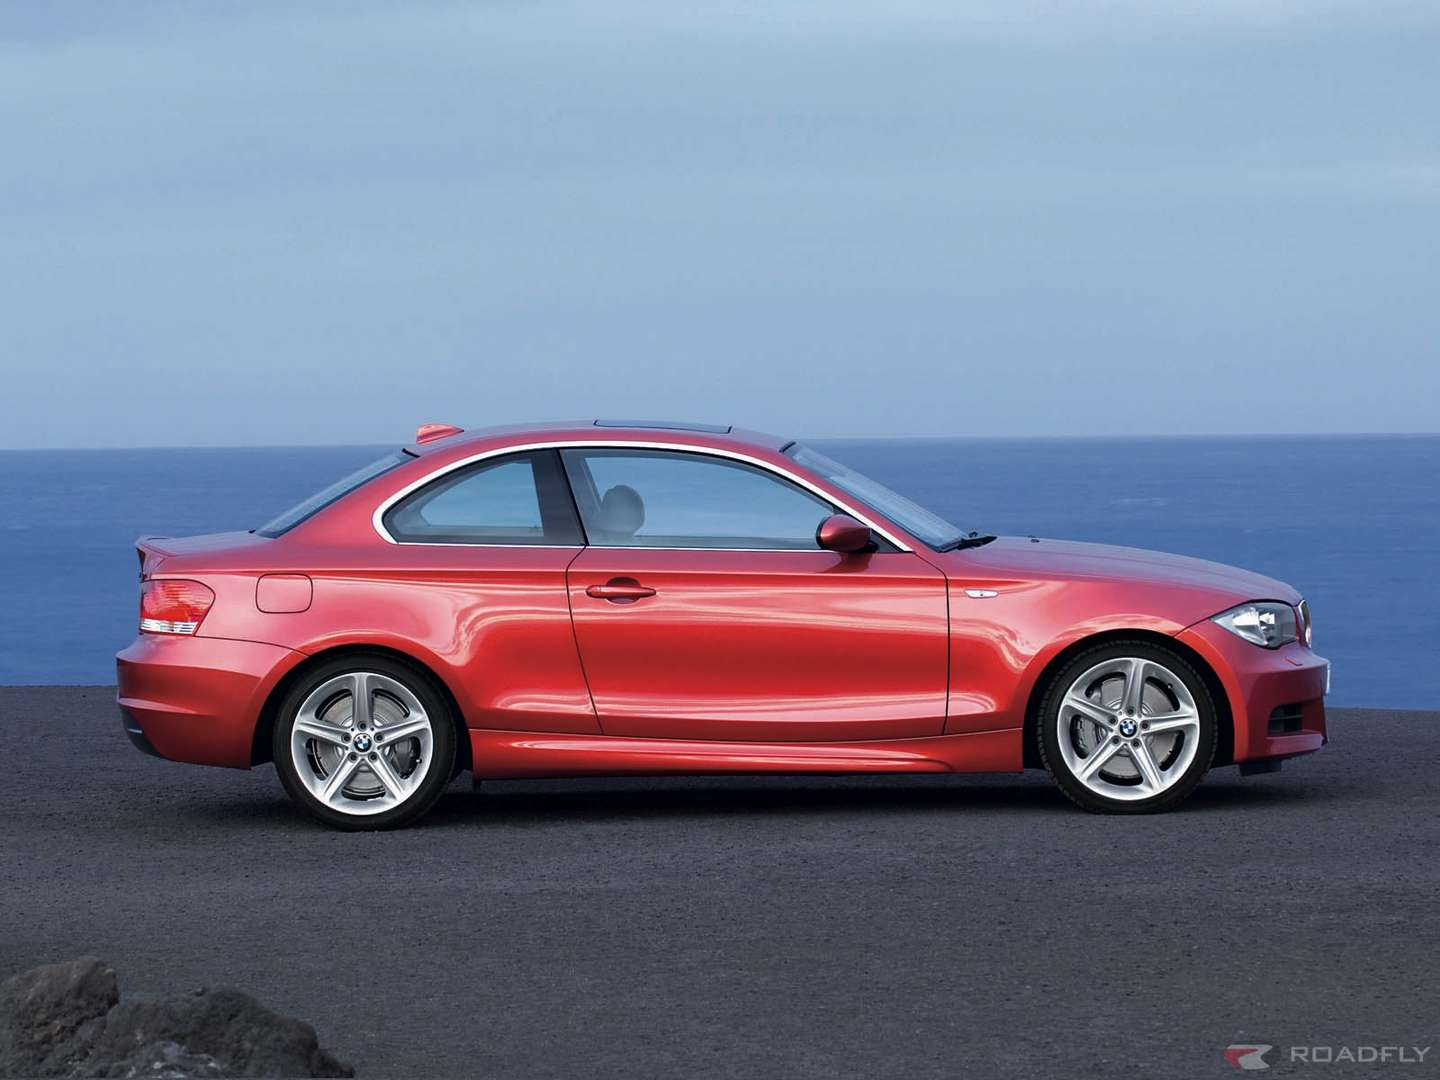 BMW 1 Series Coupe #8477165